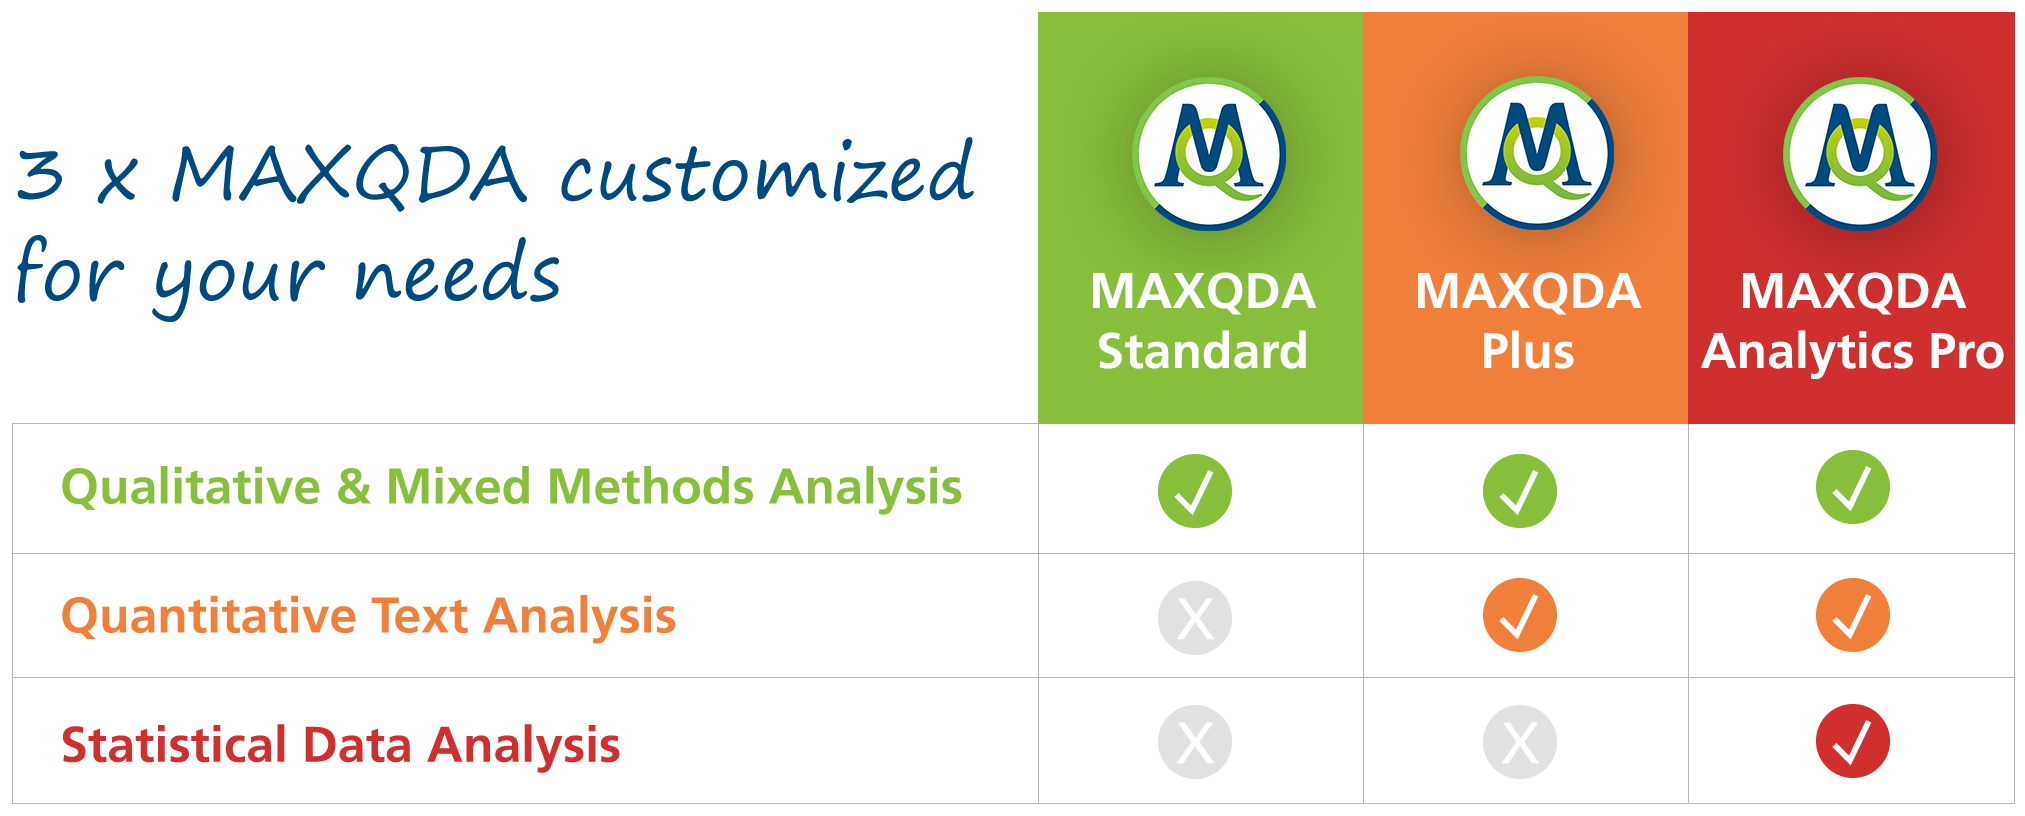 MAXQDA Product Comparison